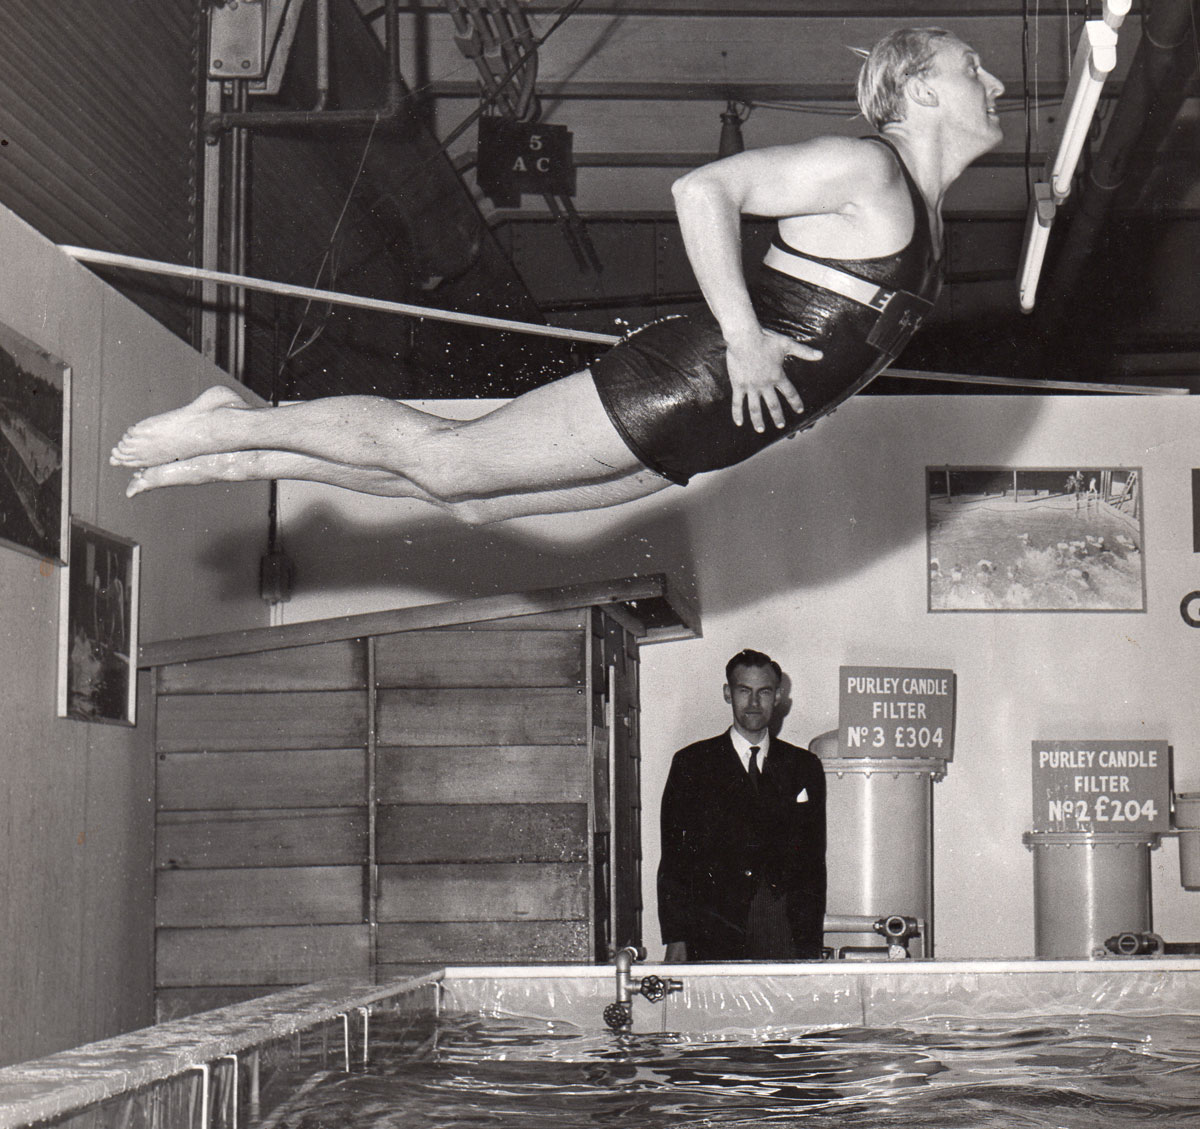 Trevor Baylis performing a swimming stunt. Taken from the May 2015 edition of the Swimming Times magazine.